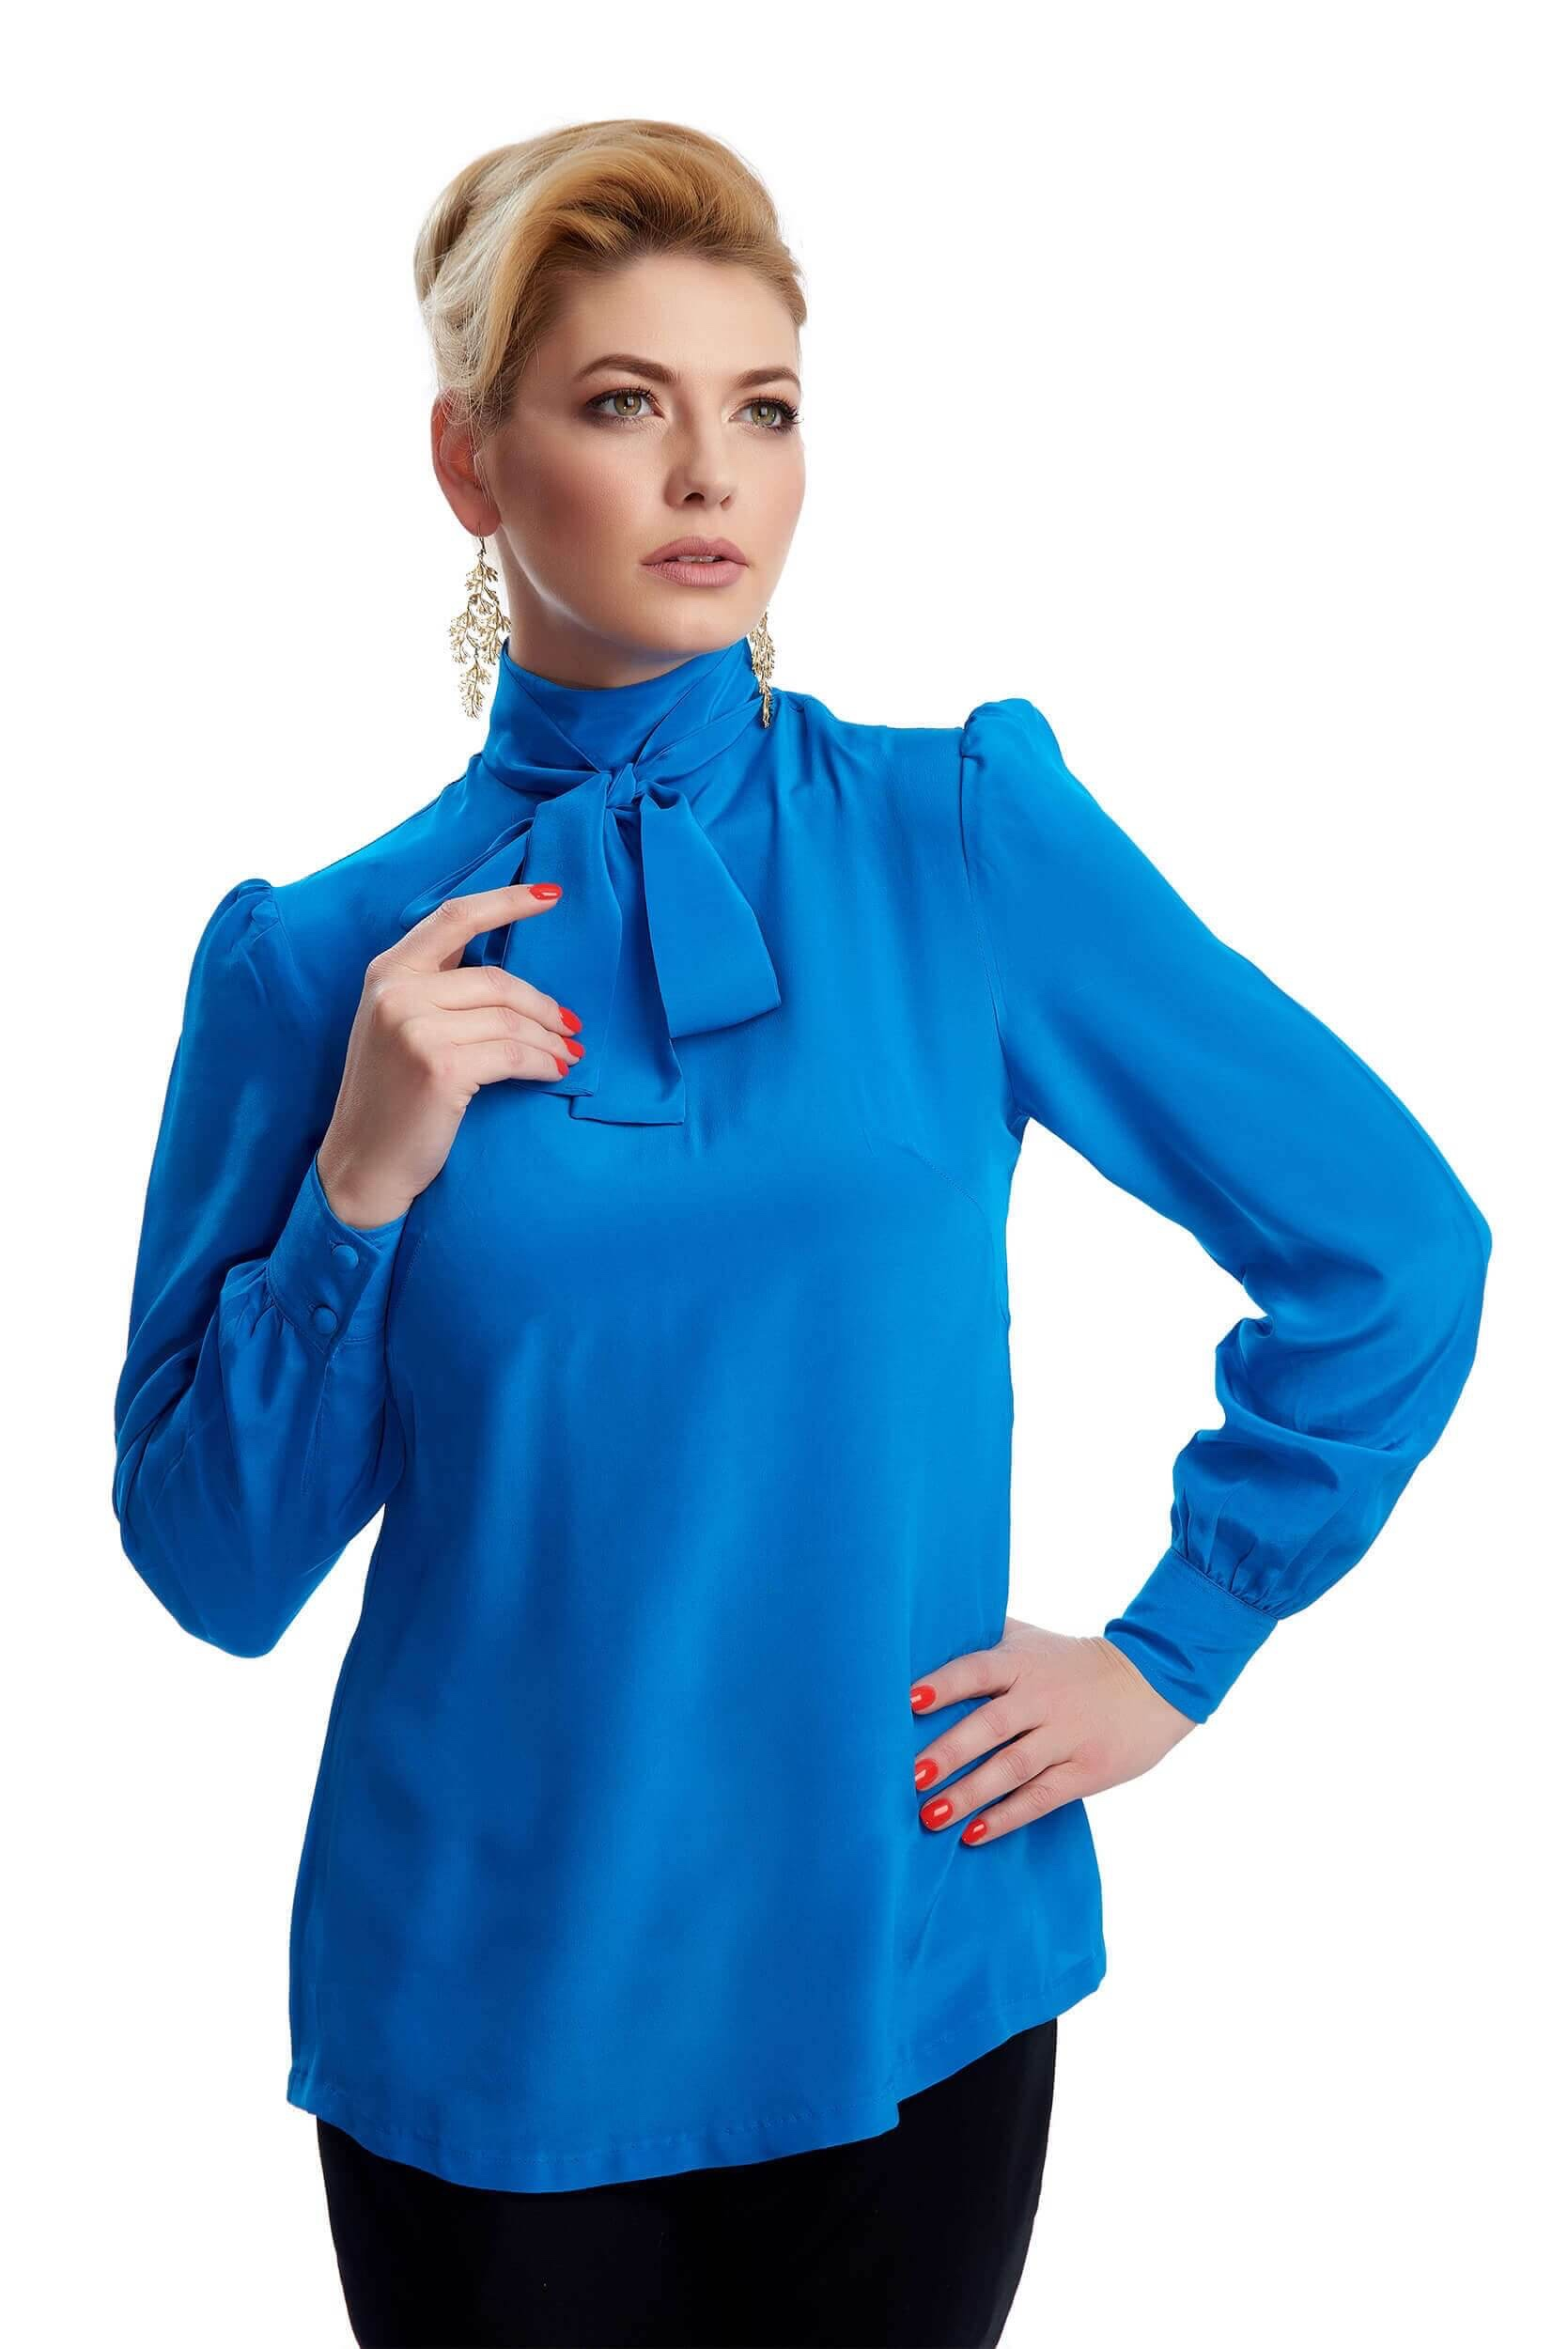 silk crepe blouse with removable lavalier knot